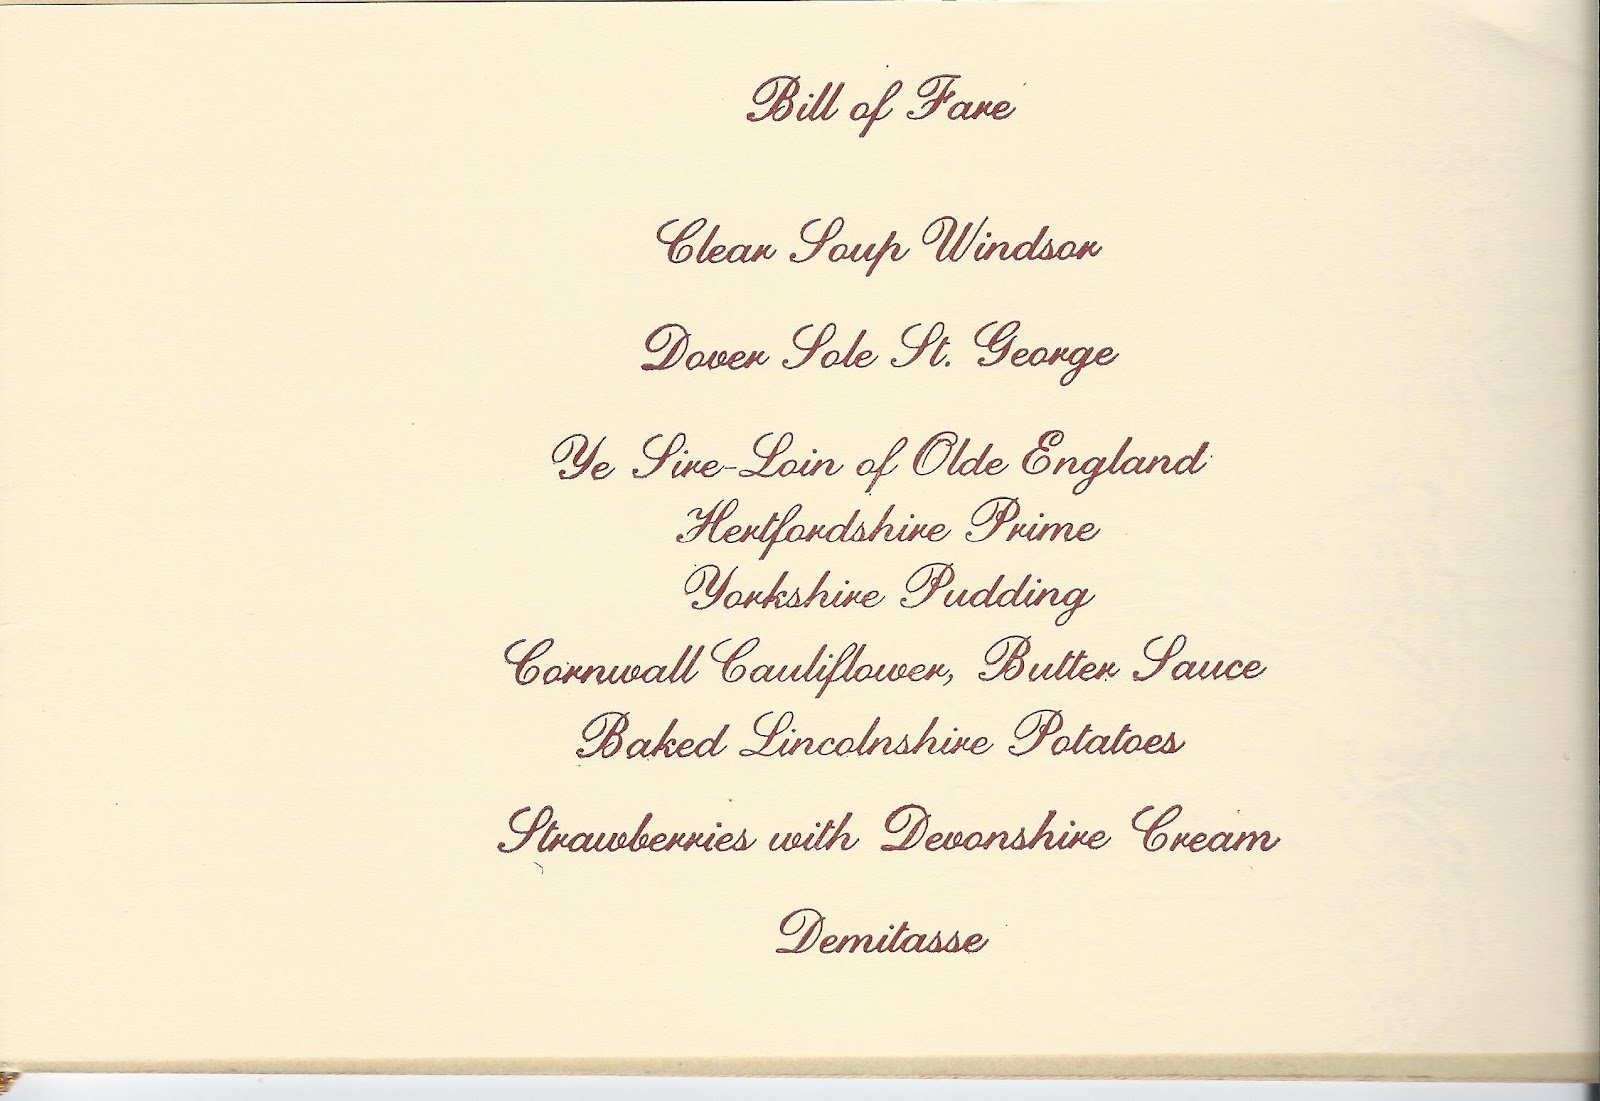 Banquet Dinner Invitation Wording